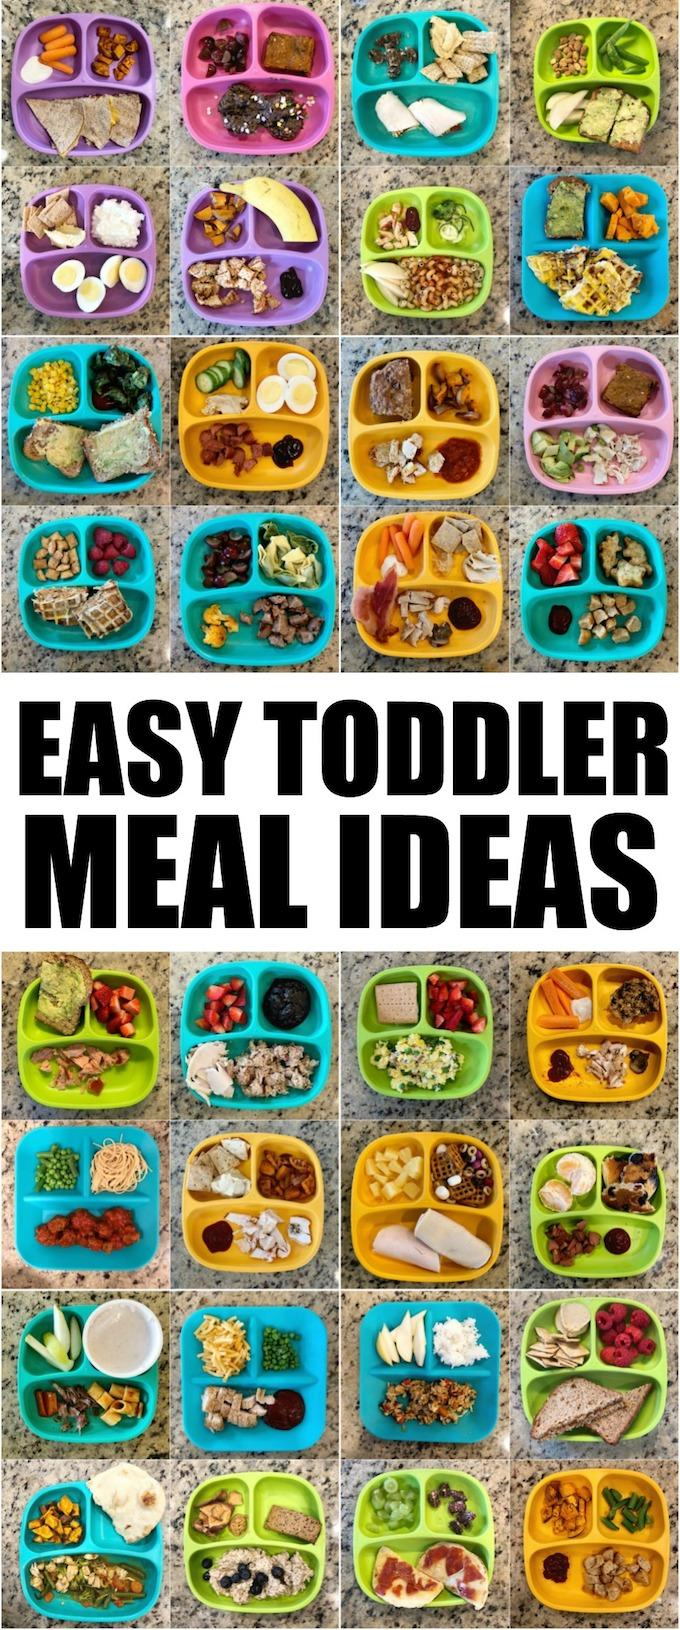 These Toddler Meal Ideas are simple, healthy and easy to assemble. Use these ideas to introduce your toddlers to new foods, help picky eaters and make meals more enjoyable for everyone.